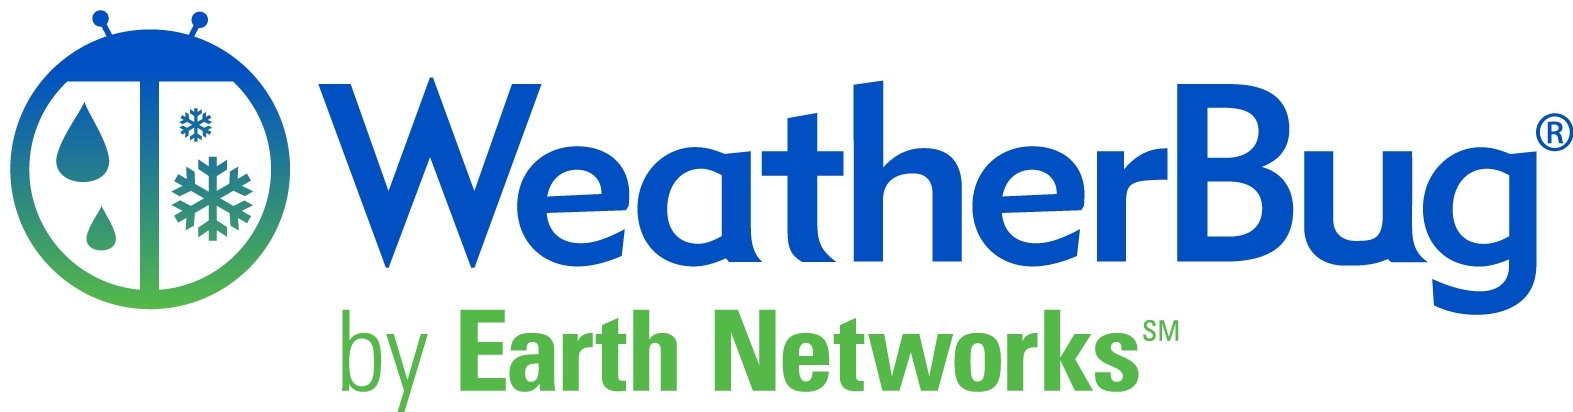 Little League and WeatherBug Launch iOS and Android App to